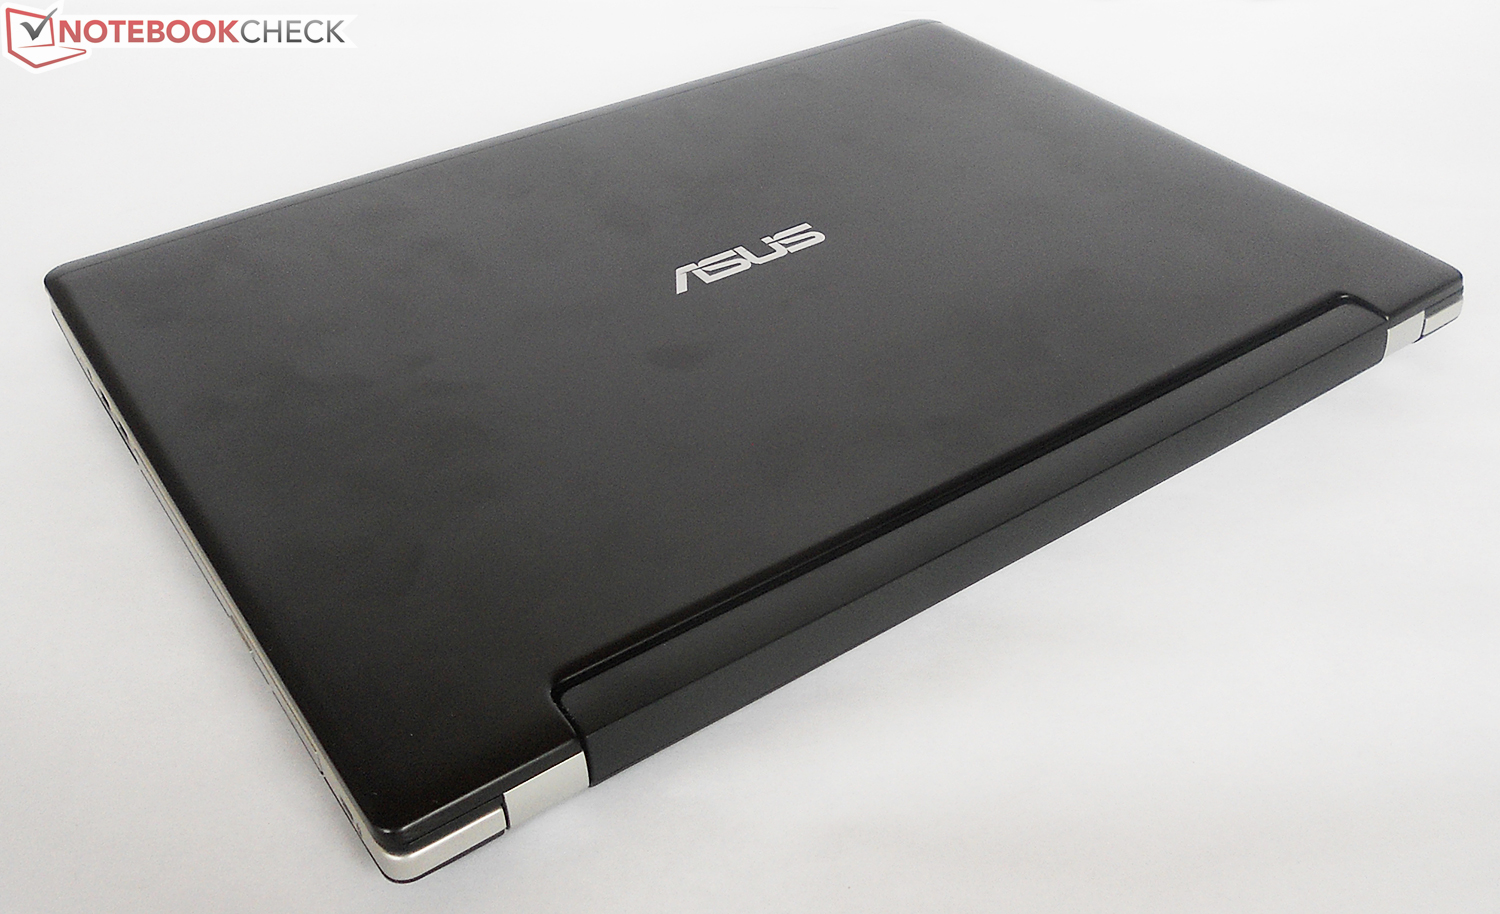 ASUS VIVOBOOK S550CB REALTEK CARD READER DOWNLOAD DRIVERS